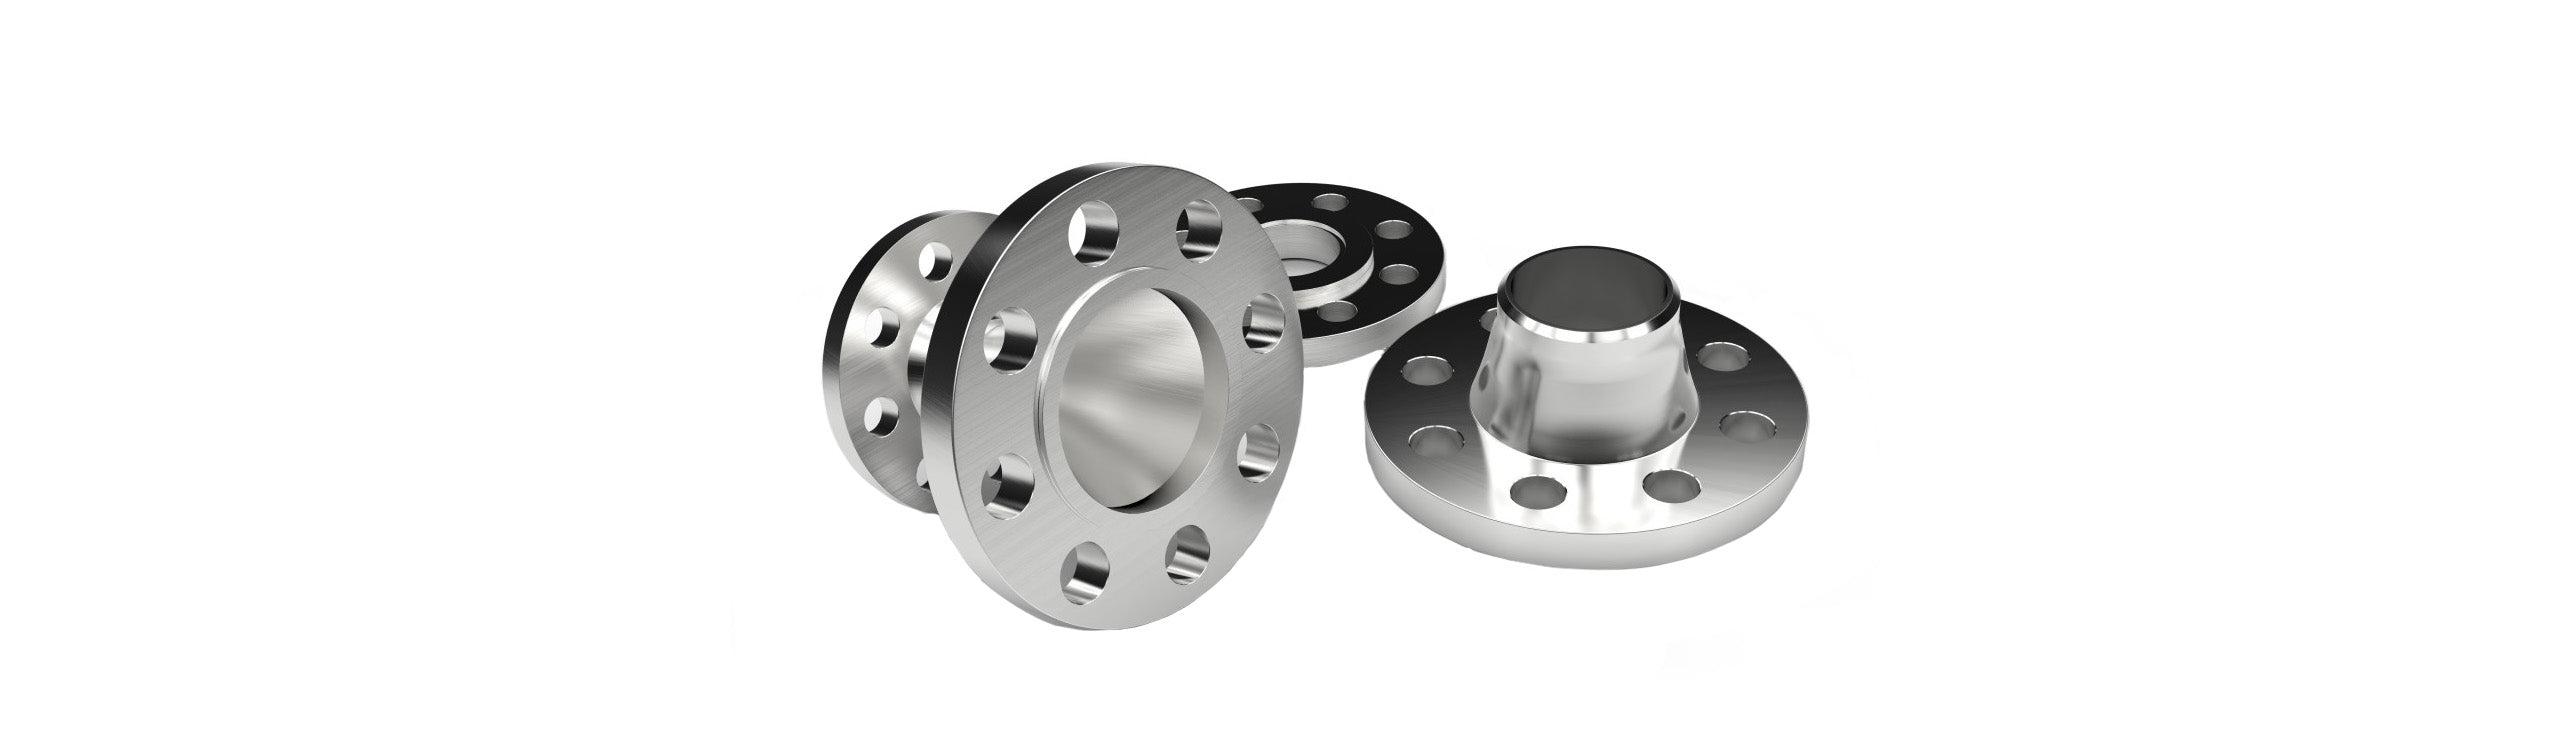 ASME B16.5 Pipe Flanges - Weld Neck Flange, Lap Joint Flange, Socket Weld Flange, Blind Flange